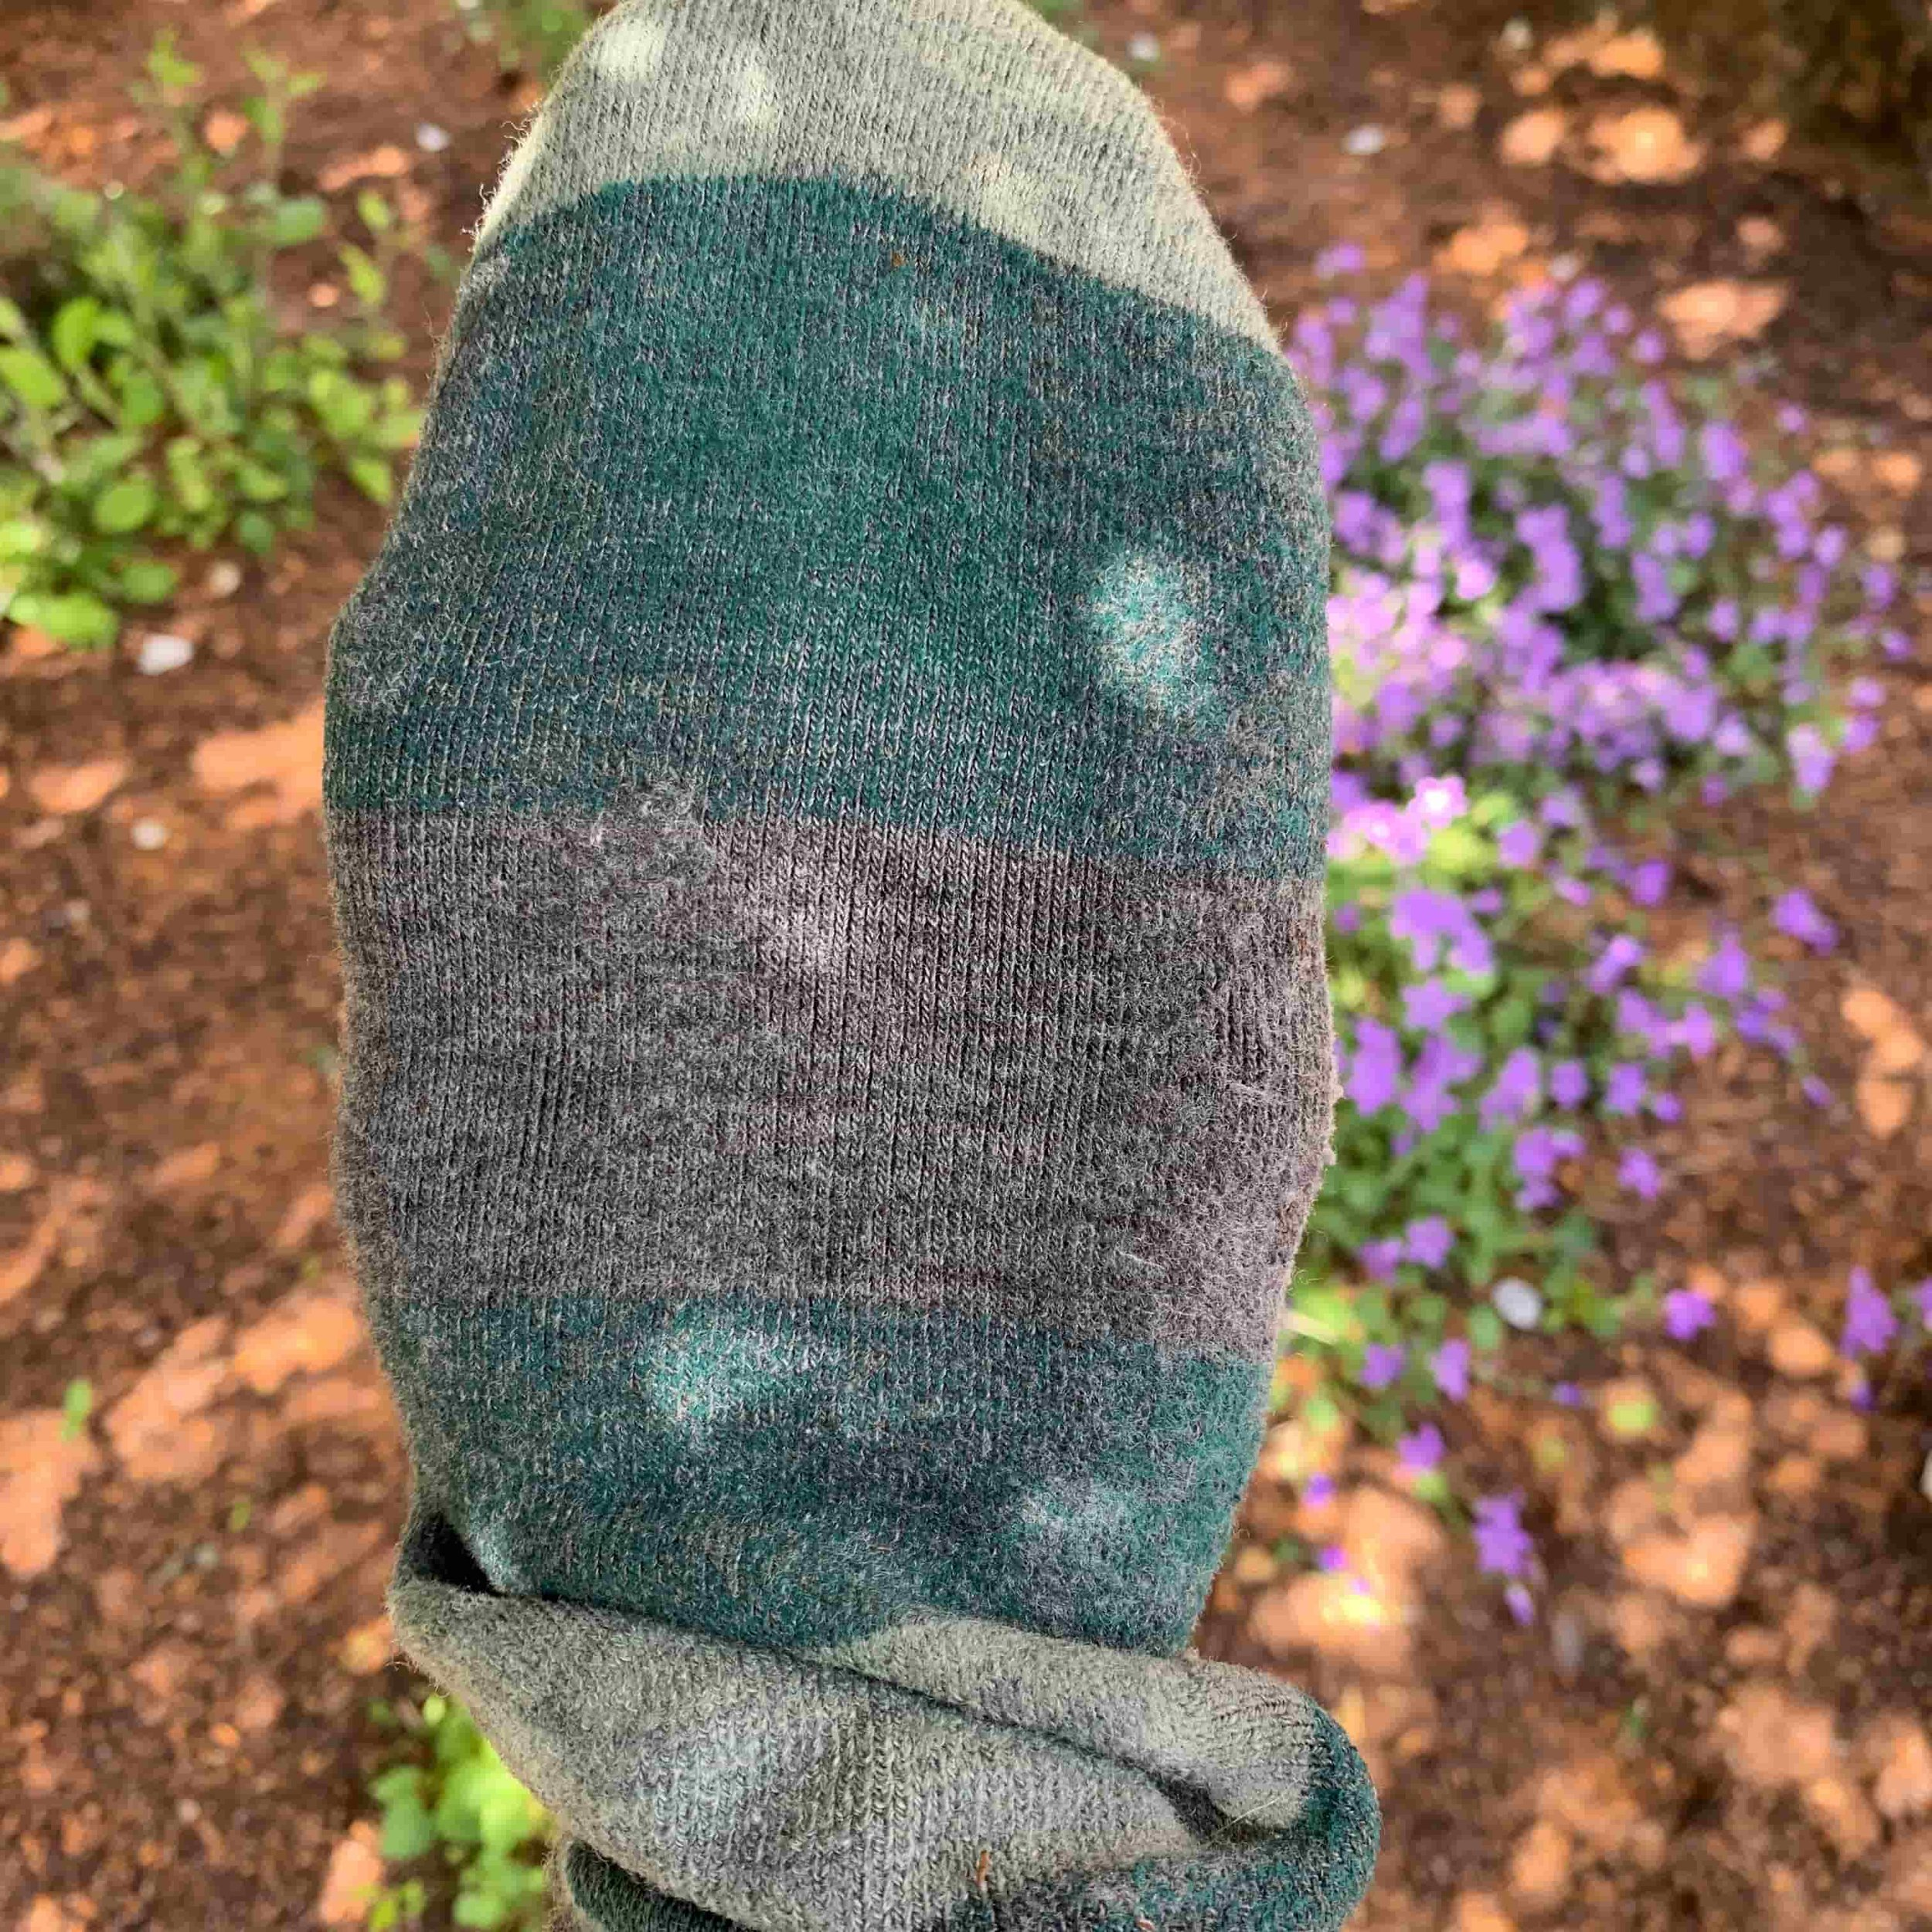 This sock was used for roughly 400 miles on the Arizona Trail. There is one small spot that shows wear, underneath the ball of the foot. Photo courtesy Naomi Hudetz